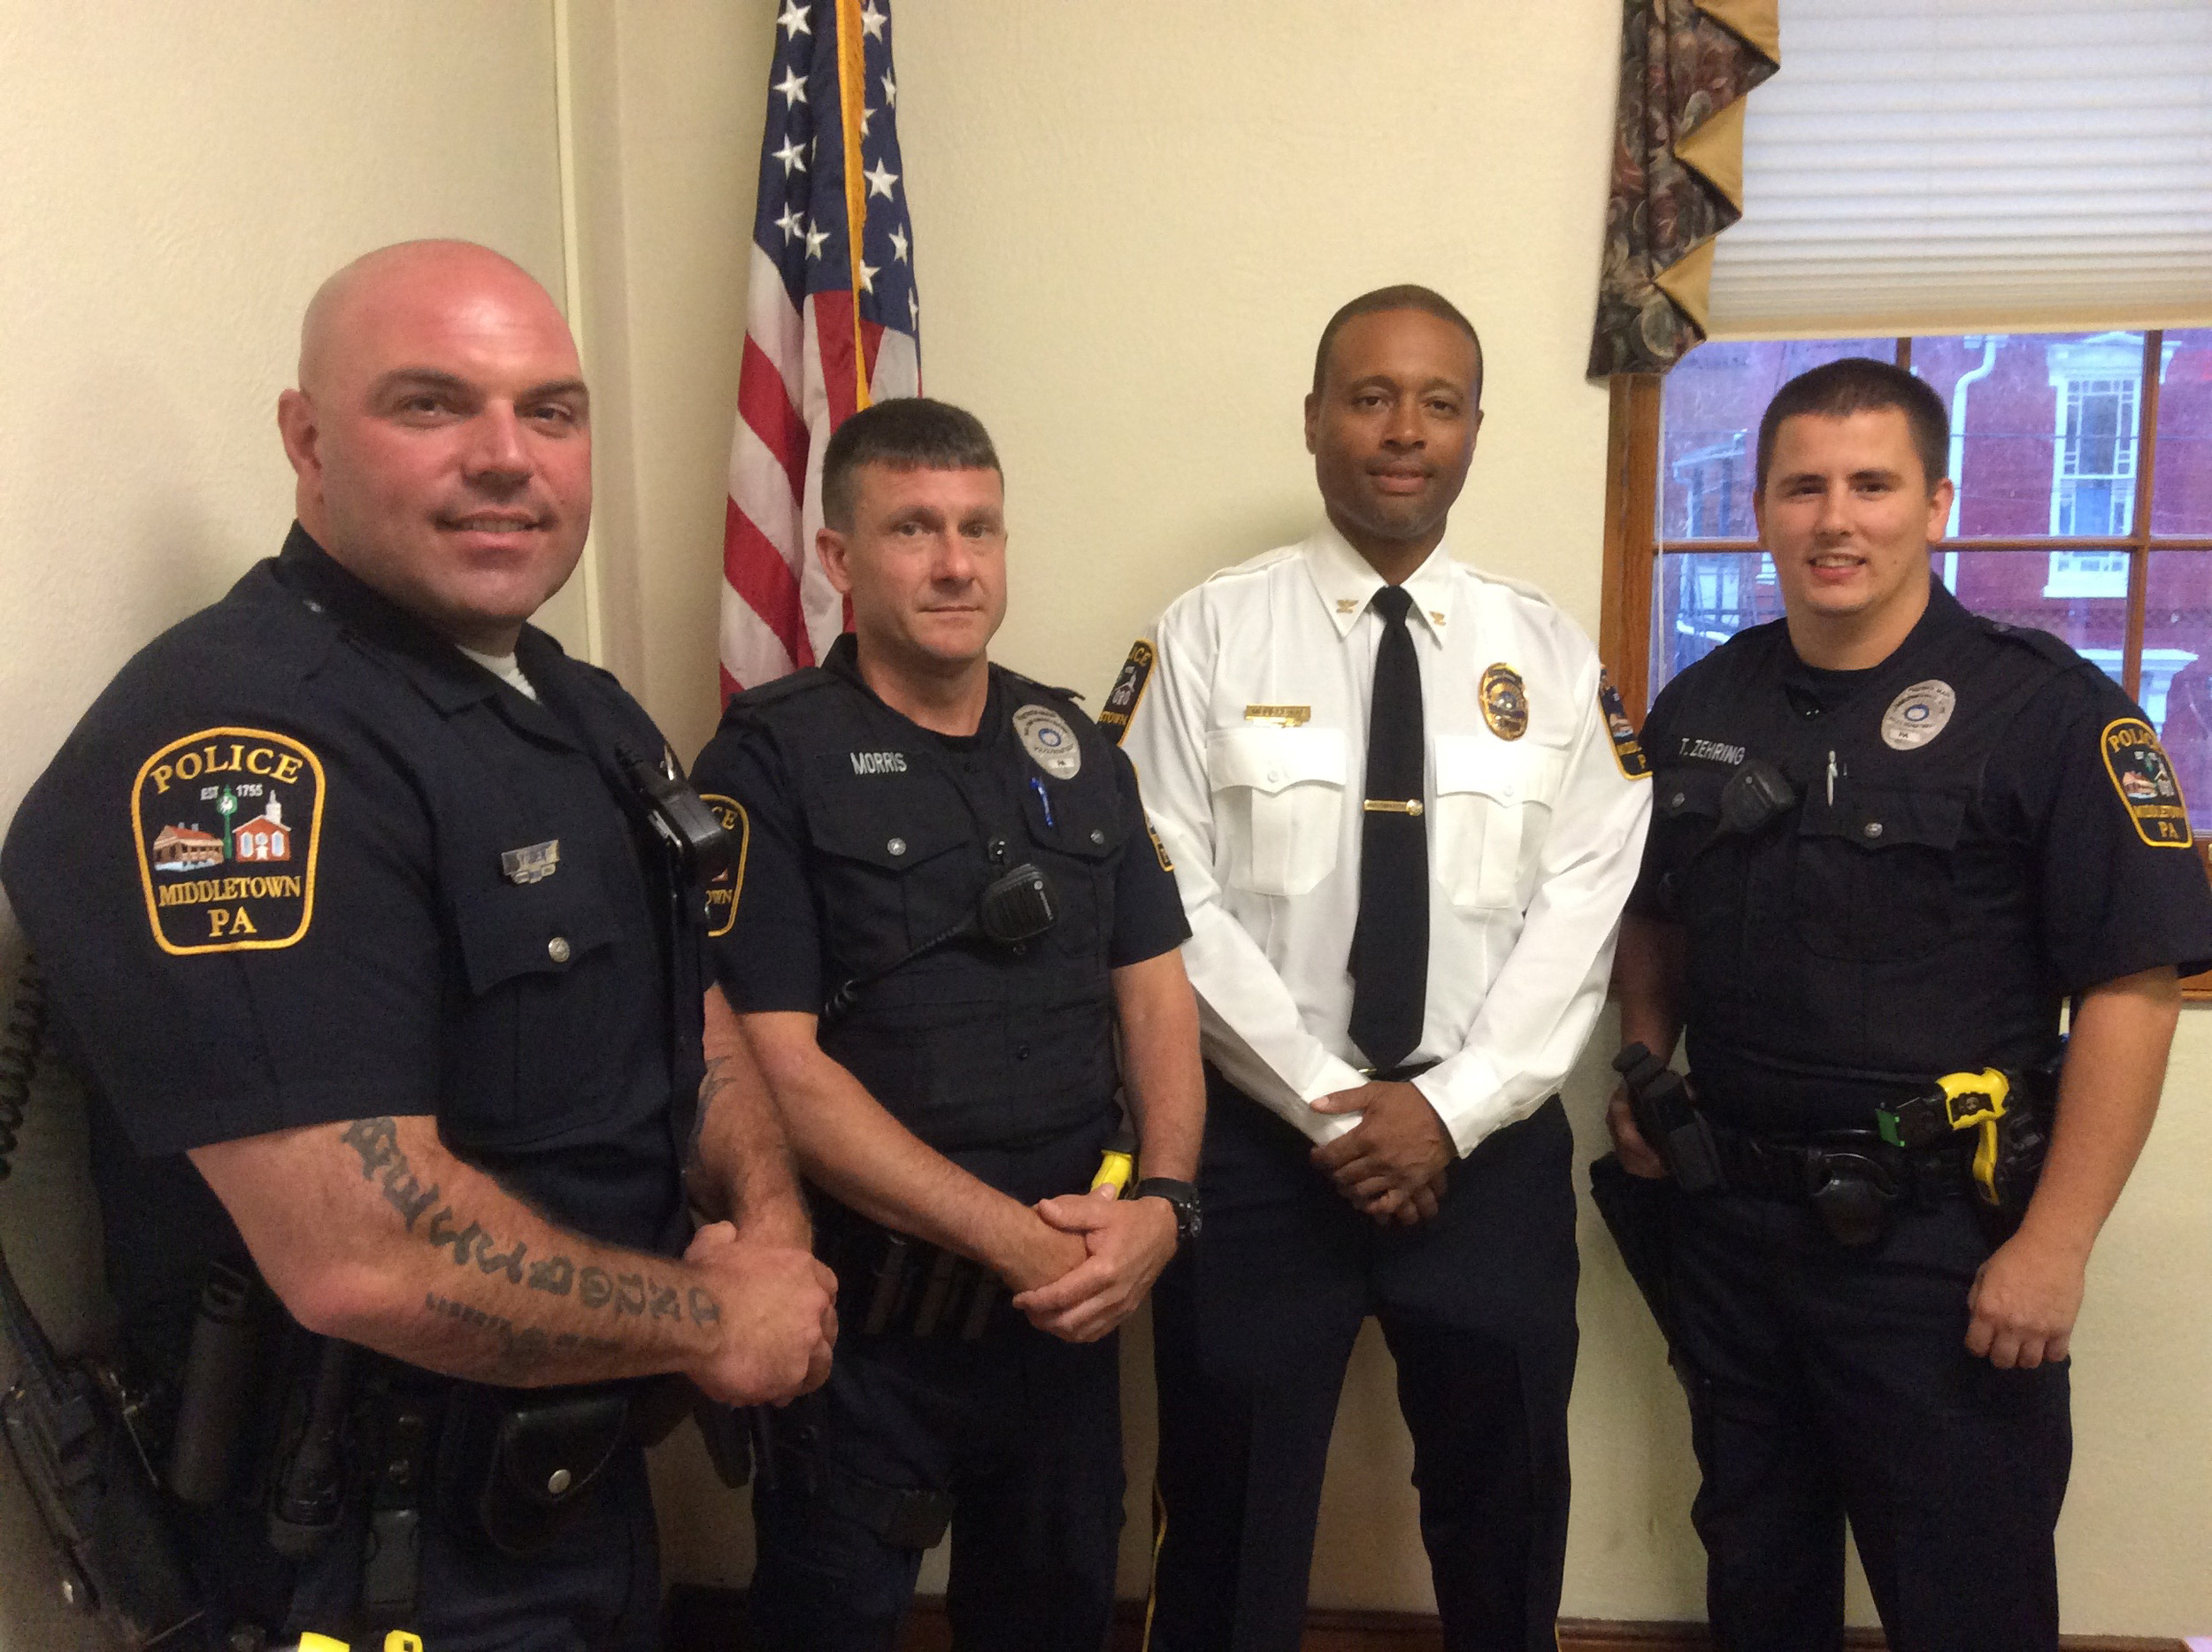 Sgt. Scott Yoder, Sgt. Dennis Morris, Chief George Mouchette, and Patrolman Tyler Zehring.